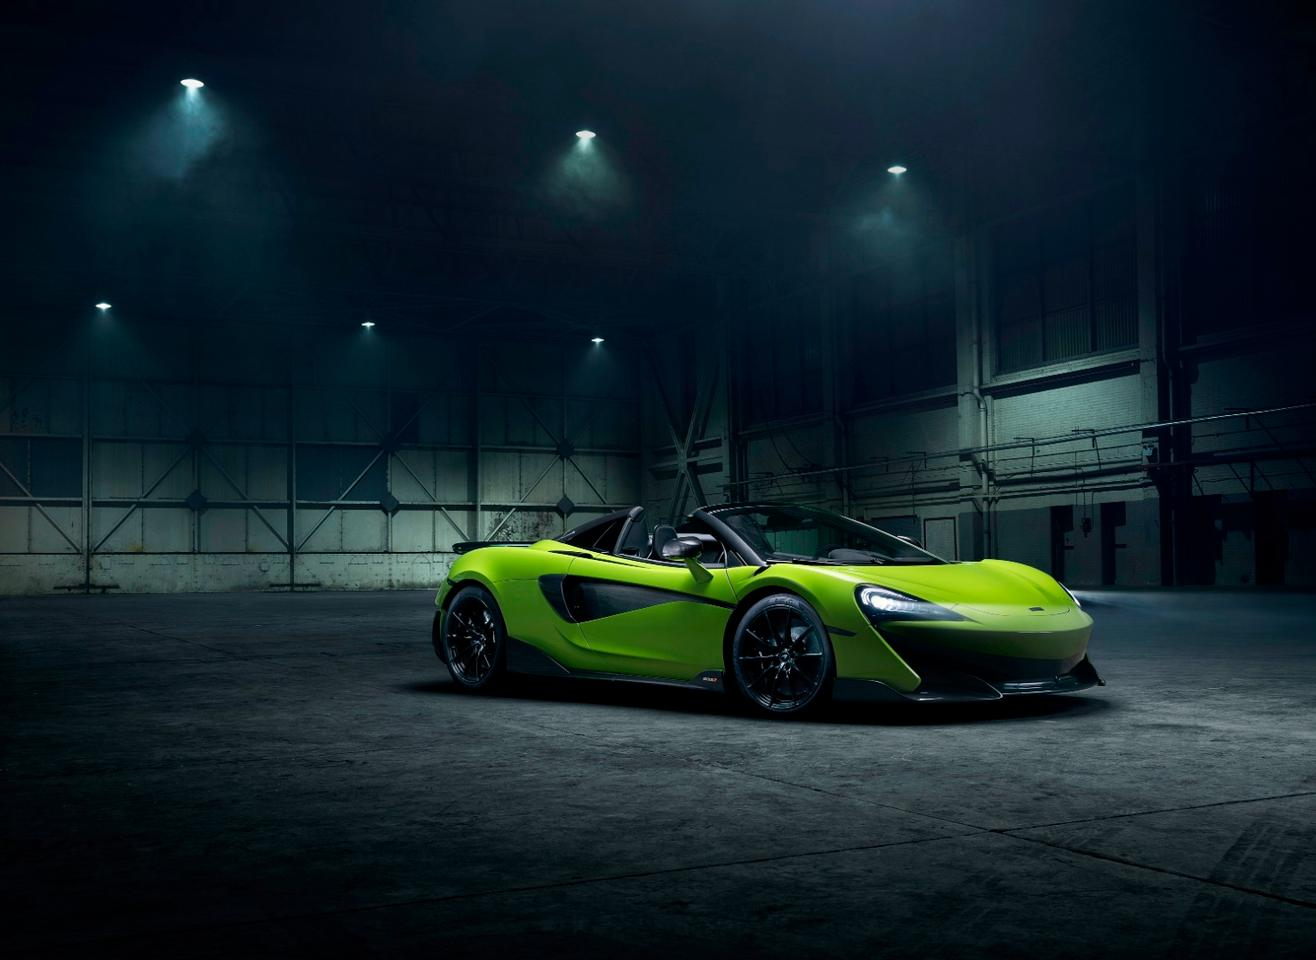 Like the 600LT coupe, the Spider model produces592bhp of power from its 3.8-liter twin-turbocharged V8 engine. Peak torque is at 457 pound-feet